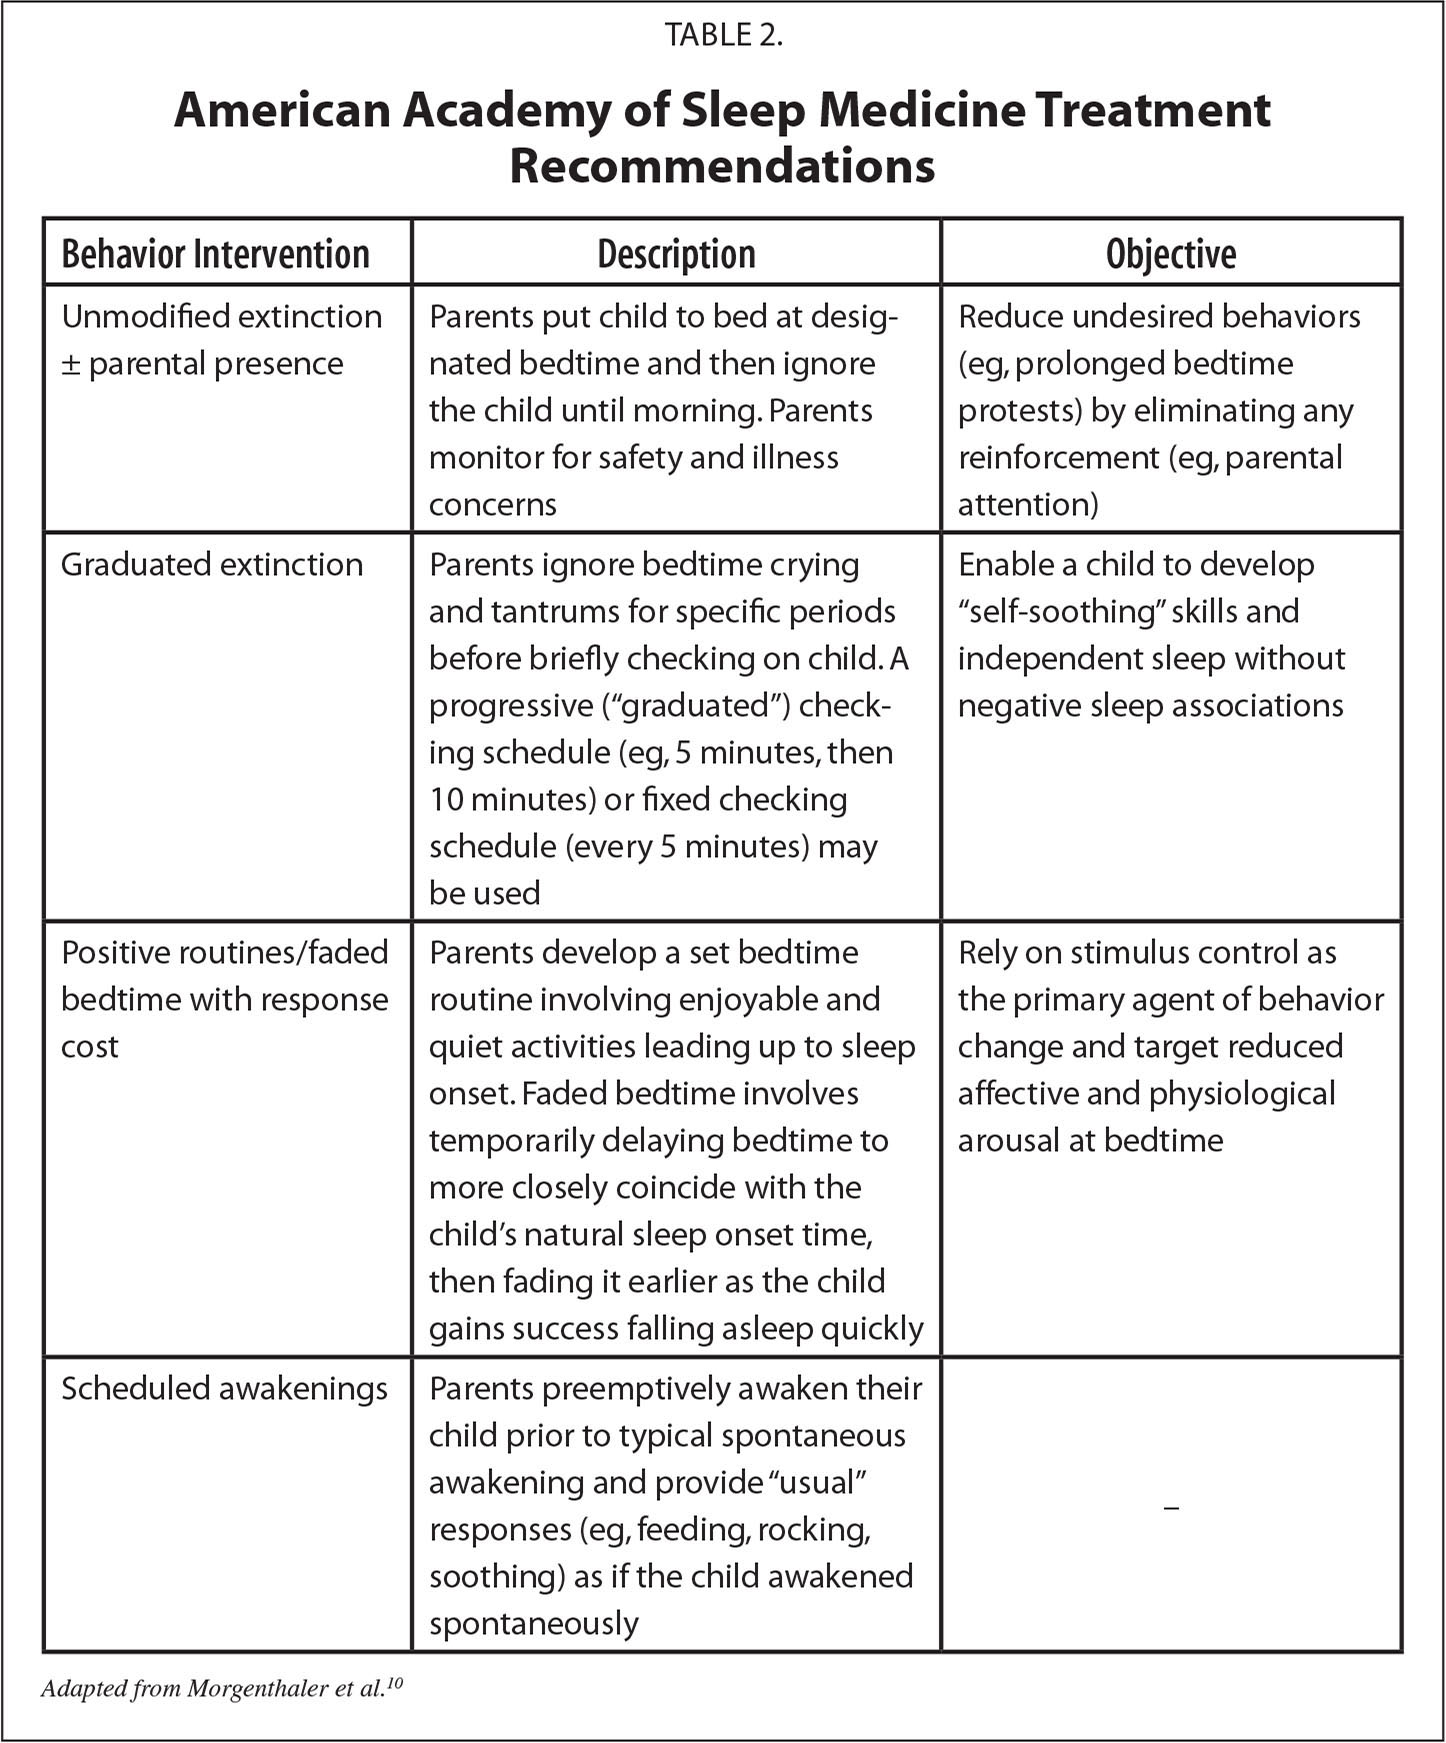 American Academy of Sleep Medicine Treatment Recommendations